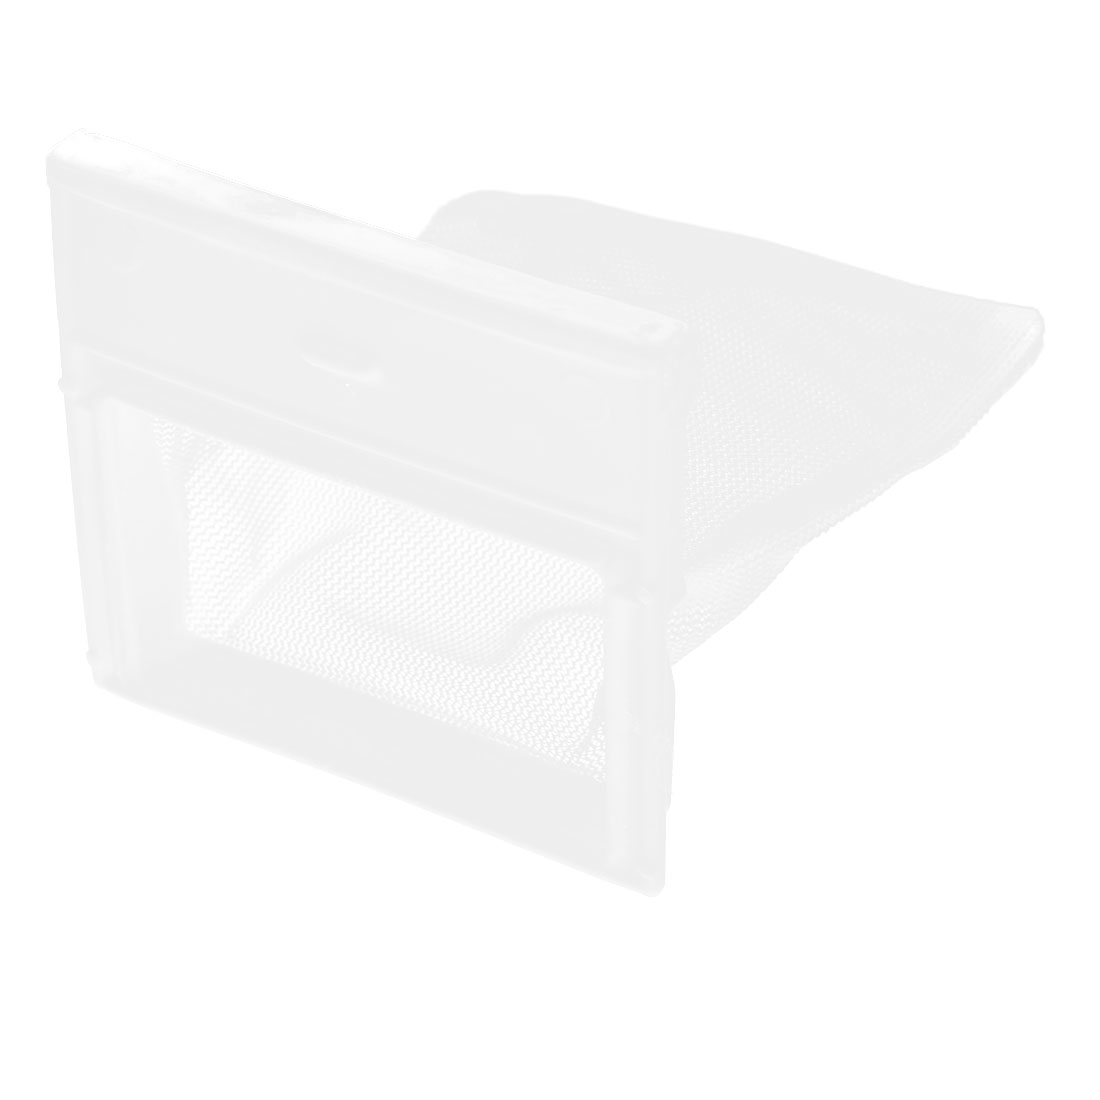 "White Plastic Nylon Filter Bag Spare Part 2.4"" x 1.6"" Mesh for Washing Machine"